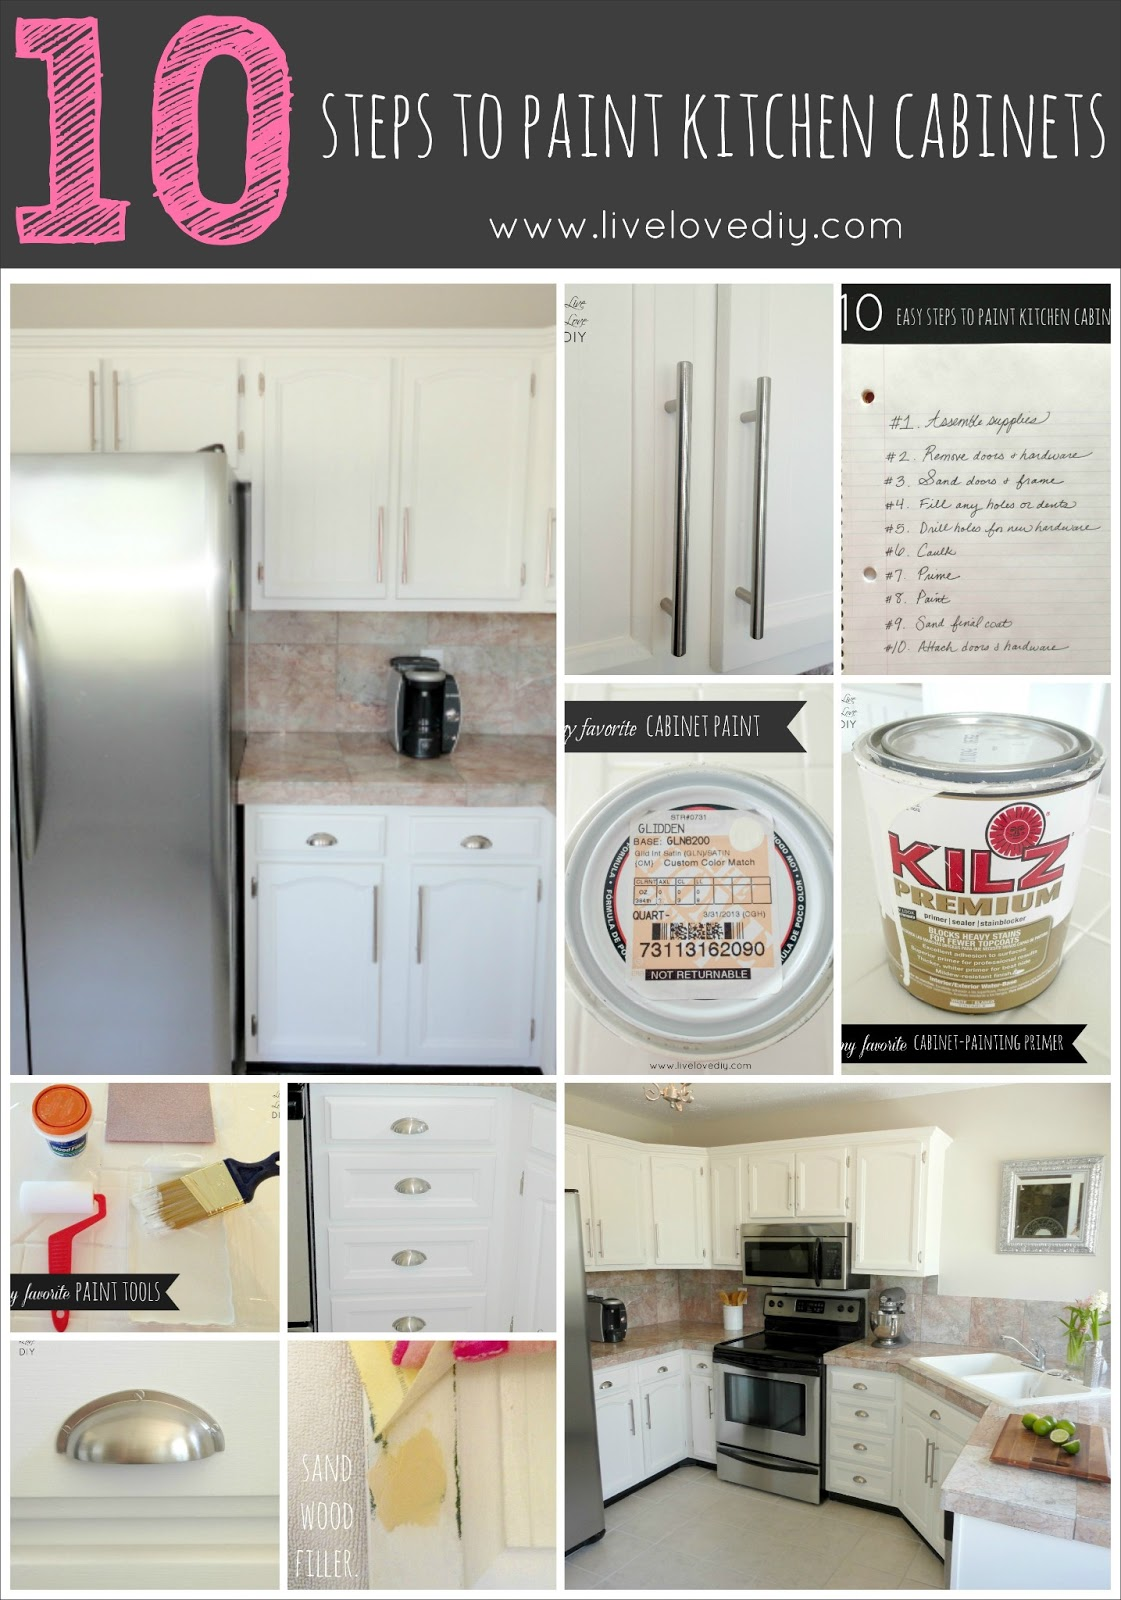 LiveLoveDIY How To Paint Kitchen Cabinets In Easy Steps - What kind of paint to use on kitchen cabinets